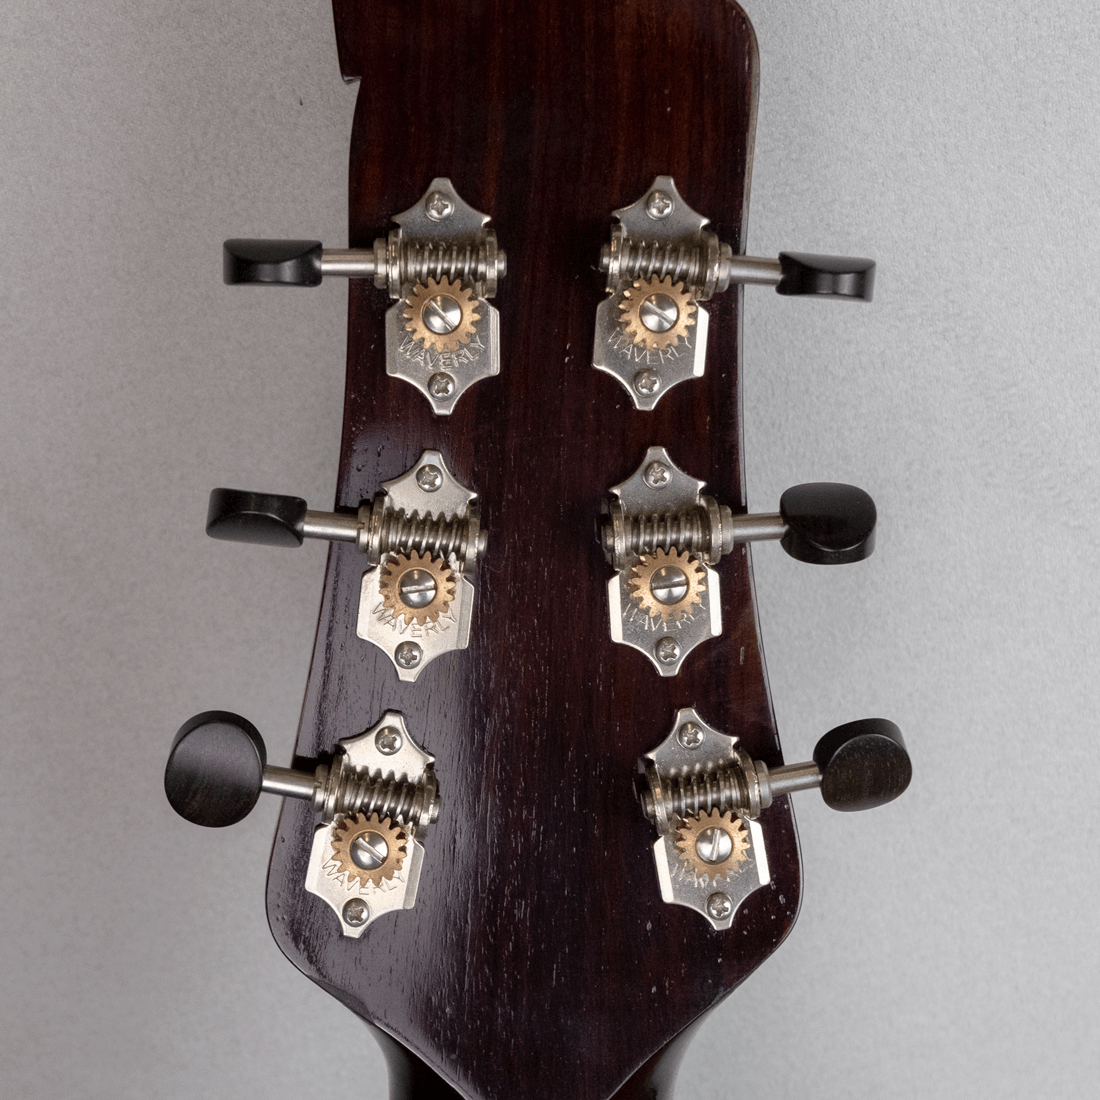 guitar standard jazz machine headstock